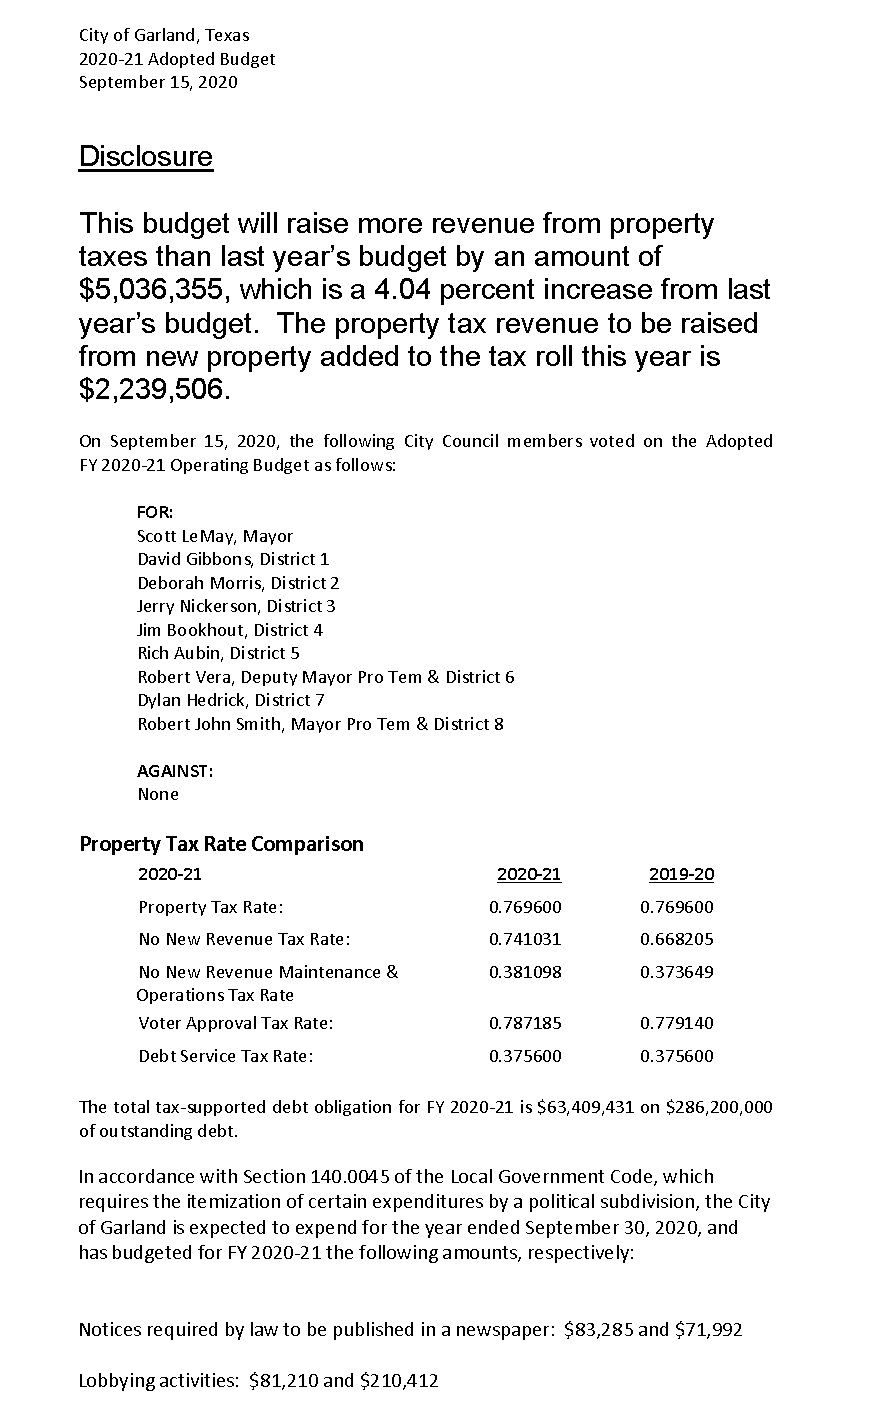 Click link below for readable Budget and Tax Disclosure FY 2020-2021